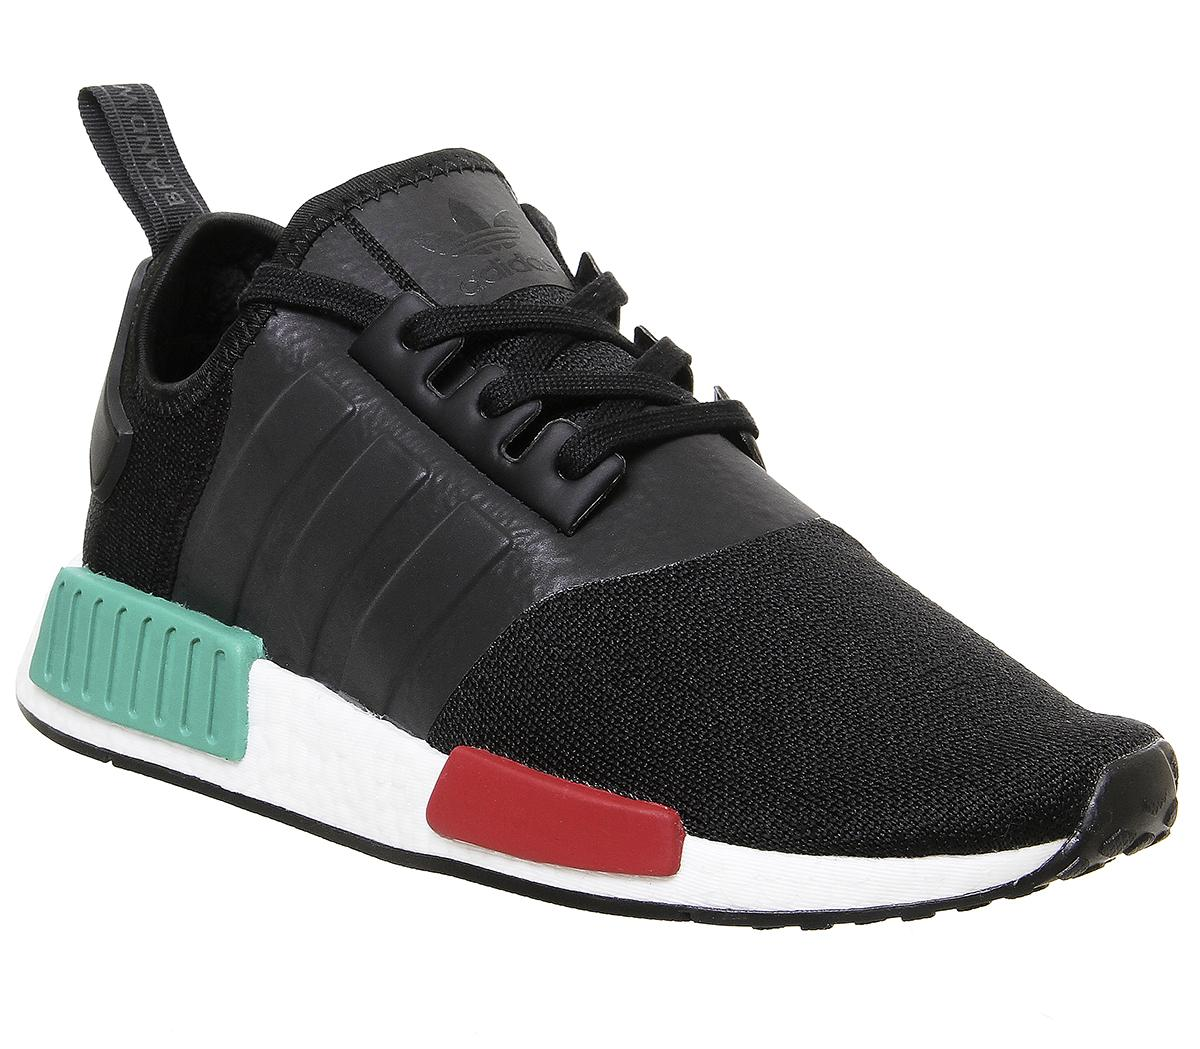 Nmd R1 Trainers